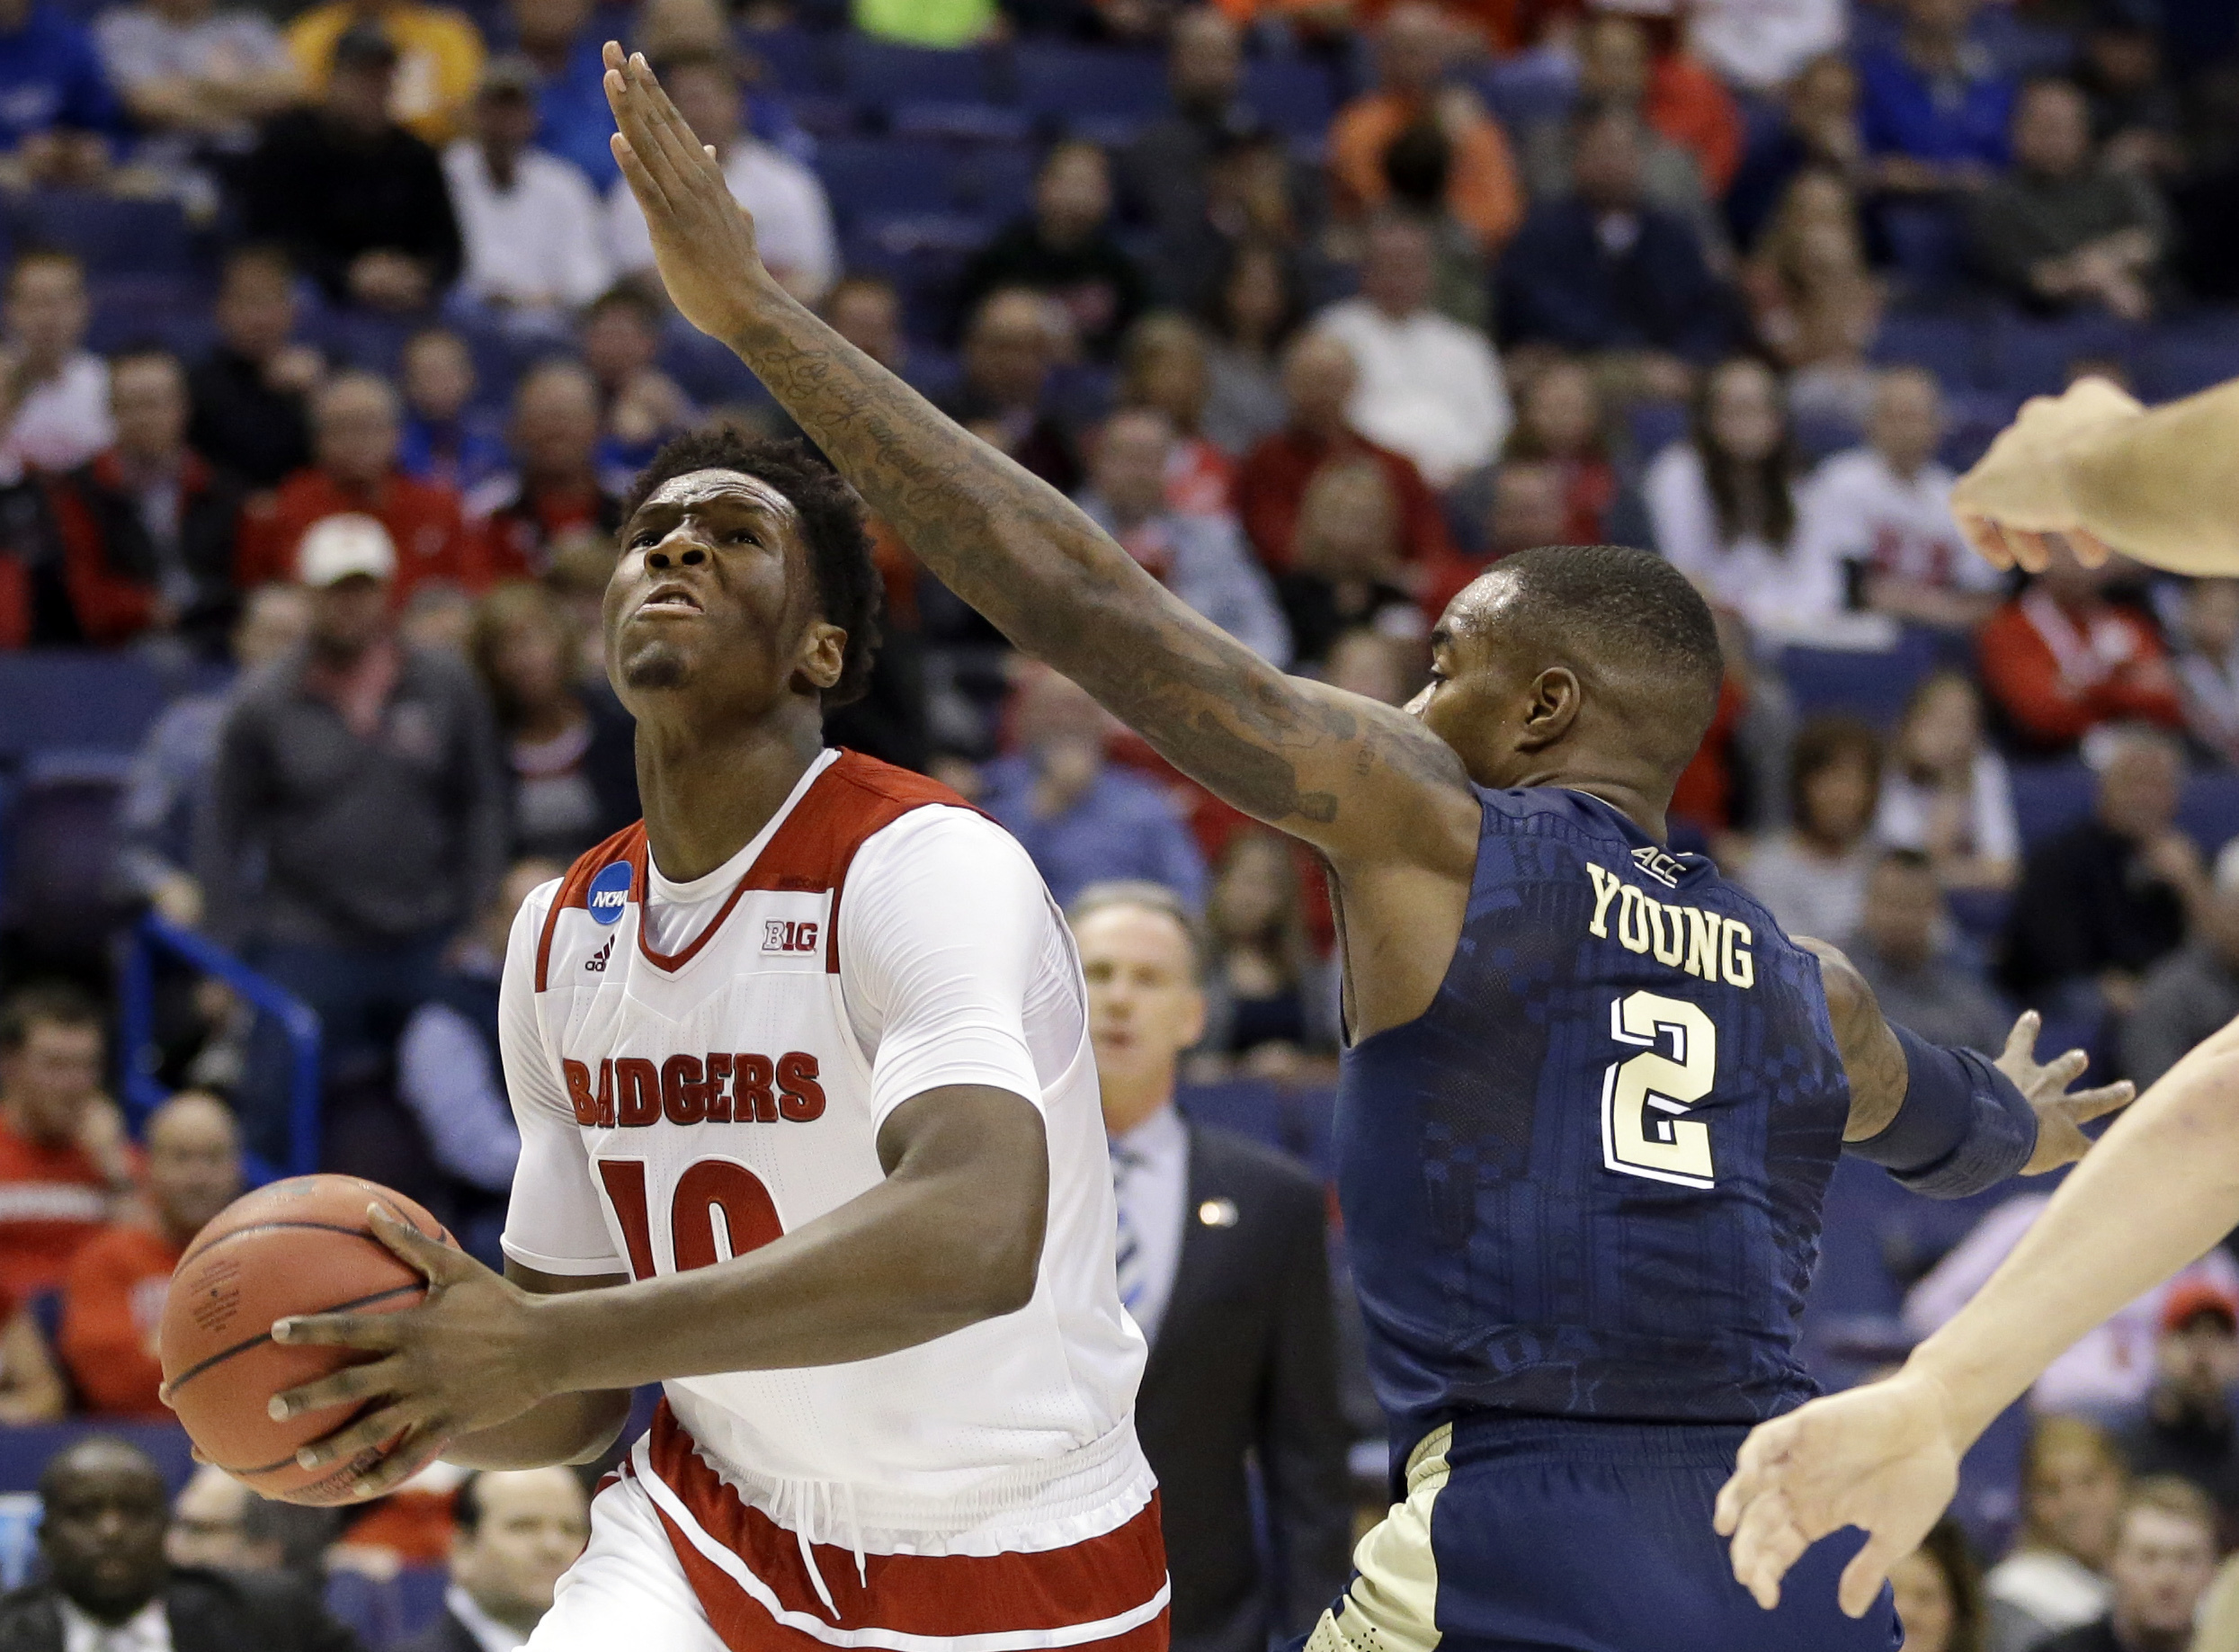 Wisconsin's Nigel Hayes, left, heads to the basket as Pittsburgh's Michael Young defends during the first half in a first-round men's college basketball game in the NCAA tournament, Friday, March 18, 2016, in St. Louis. (AP Photo/Jeff Roberson)